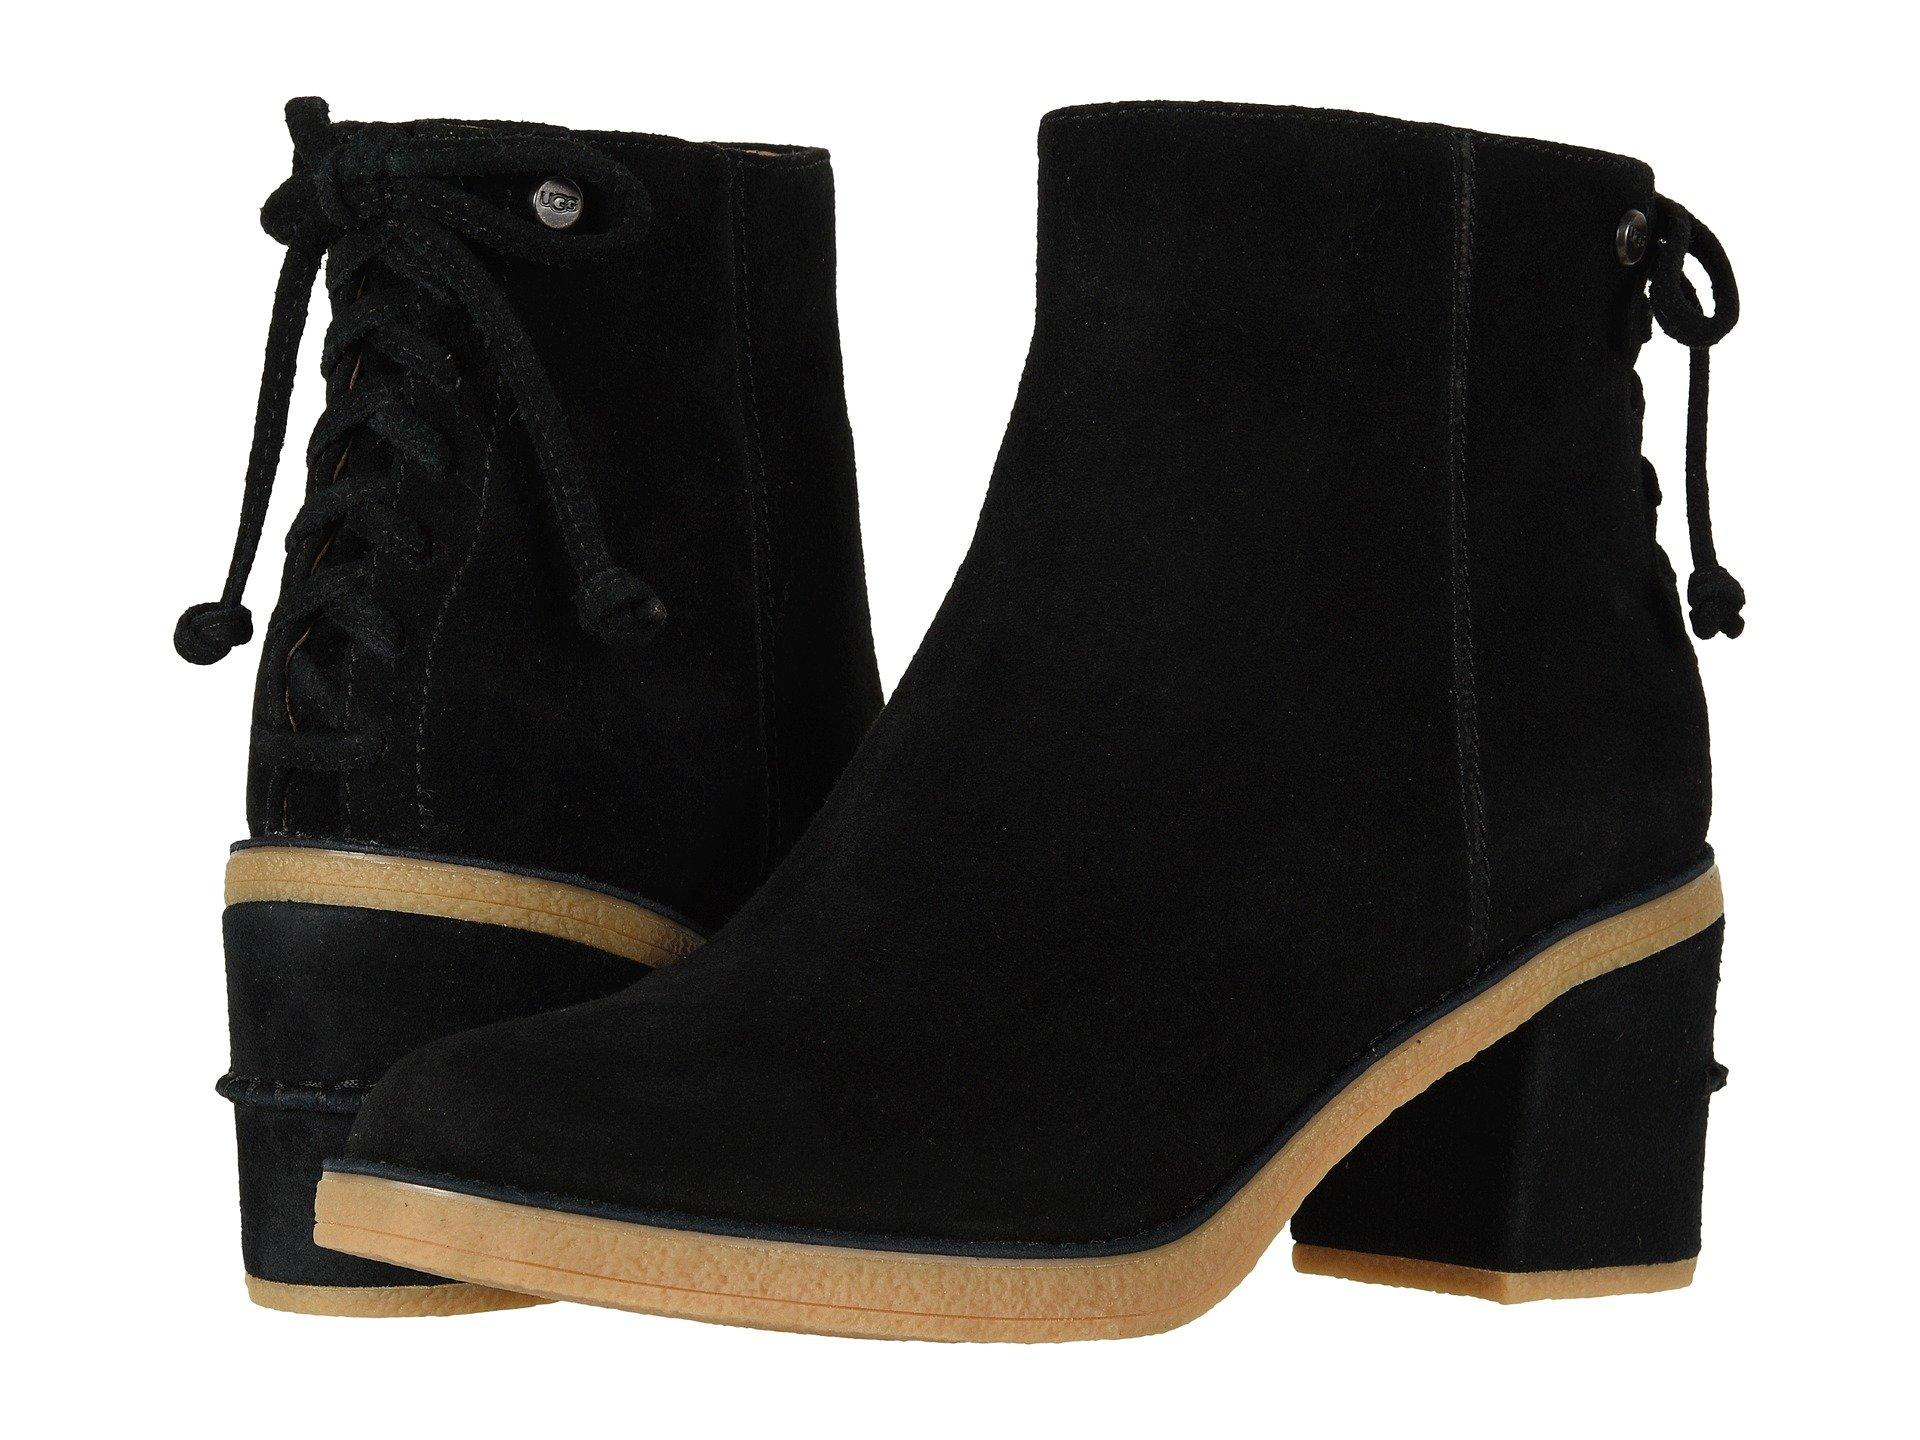 ab4421022b5 Lyst - UGG Corinne Boot in Black